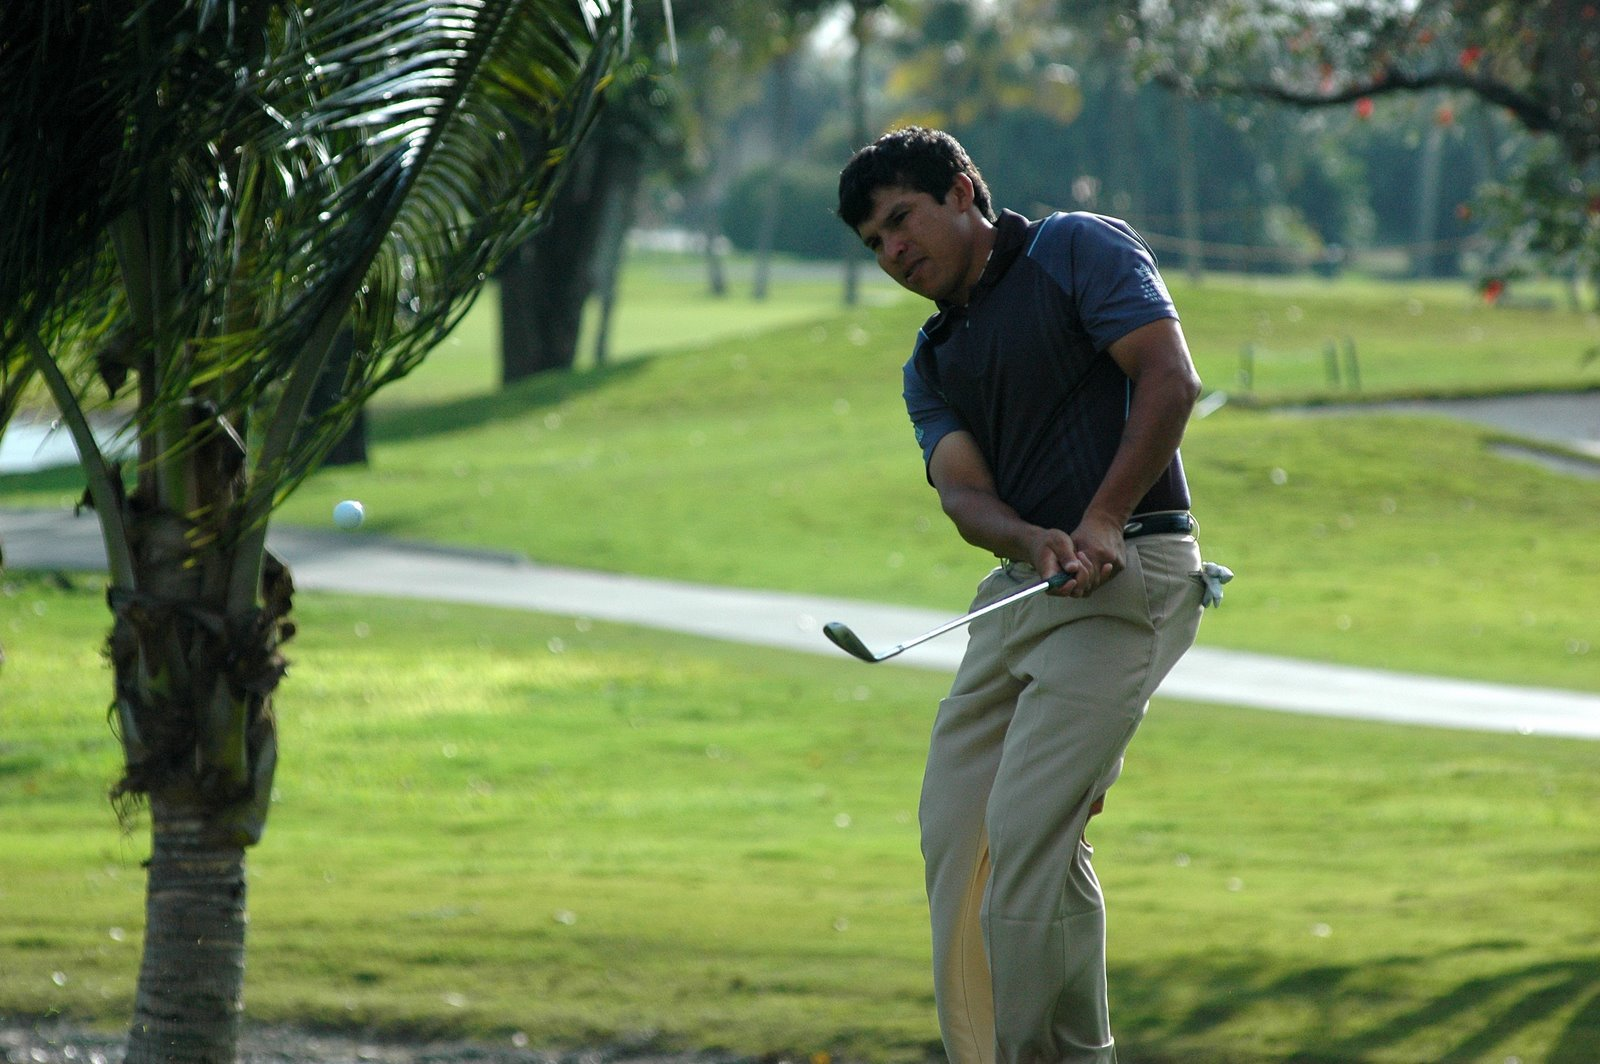 PGA Tour player, Andres Romero, has a lot of motor ability.